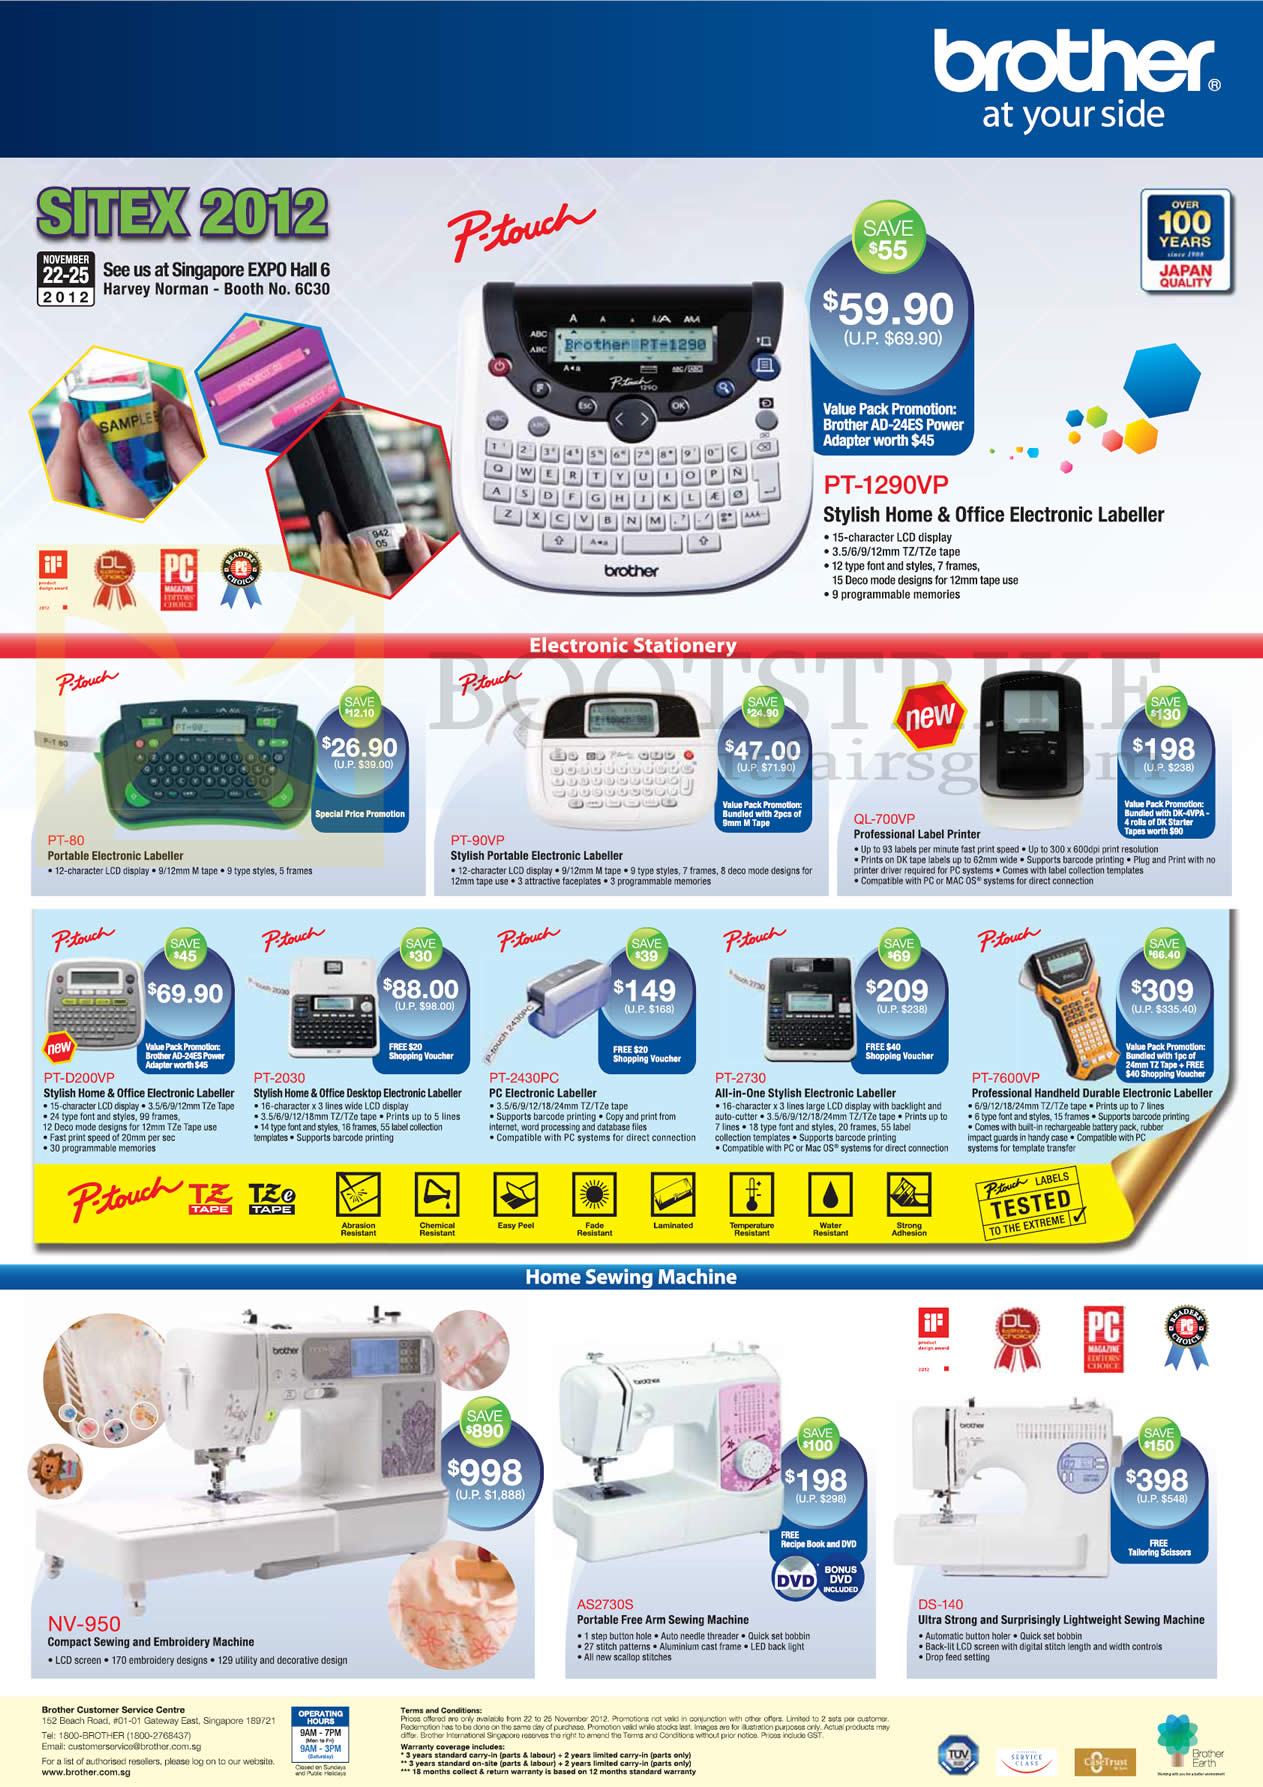 SITEX 2012 price list image brochure of Brother Labellers P-Touch PT-1290VP, PT-60, PT-90VP, QL-700VP, PT-D200VP, PT-2030, PT-2430PC, PT-2730, PT-7600VP, NV-950 Sewing Machine, AS2730S, DS-140